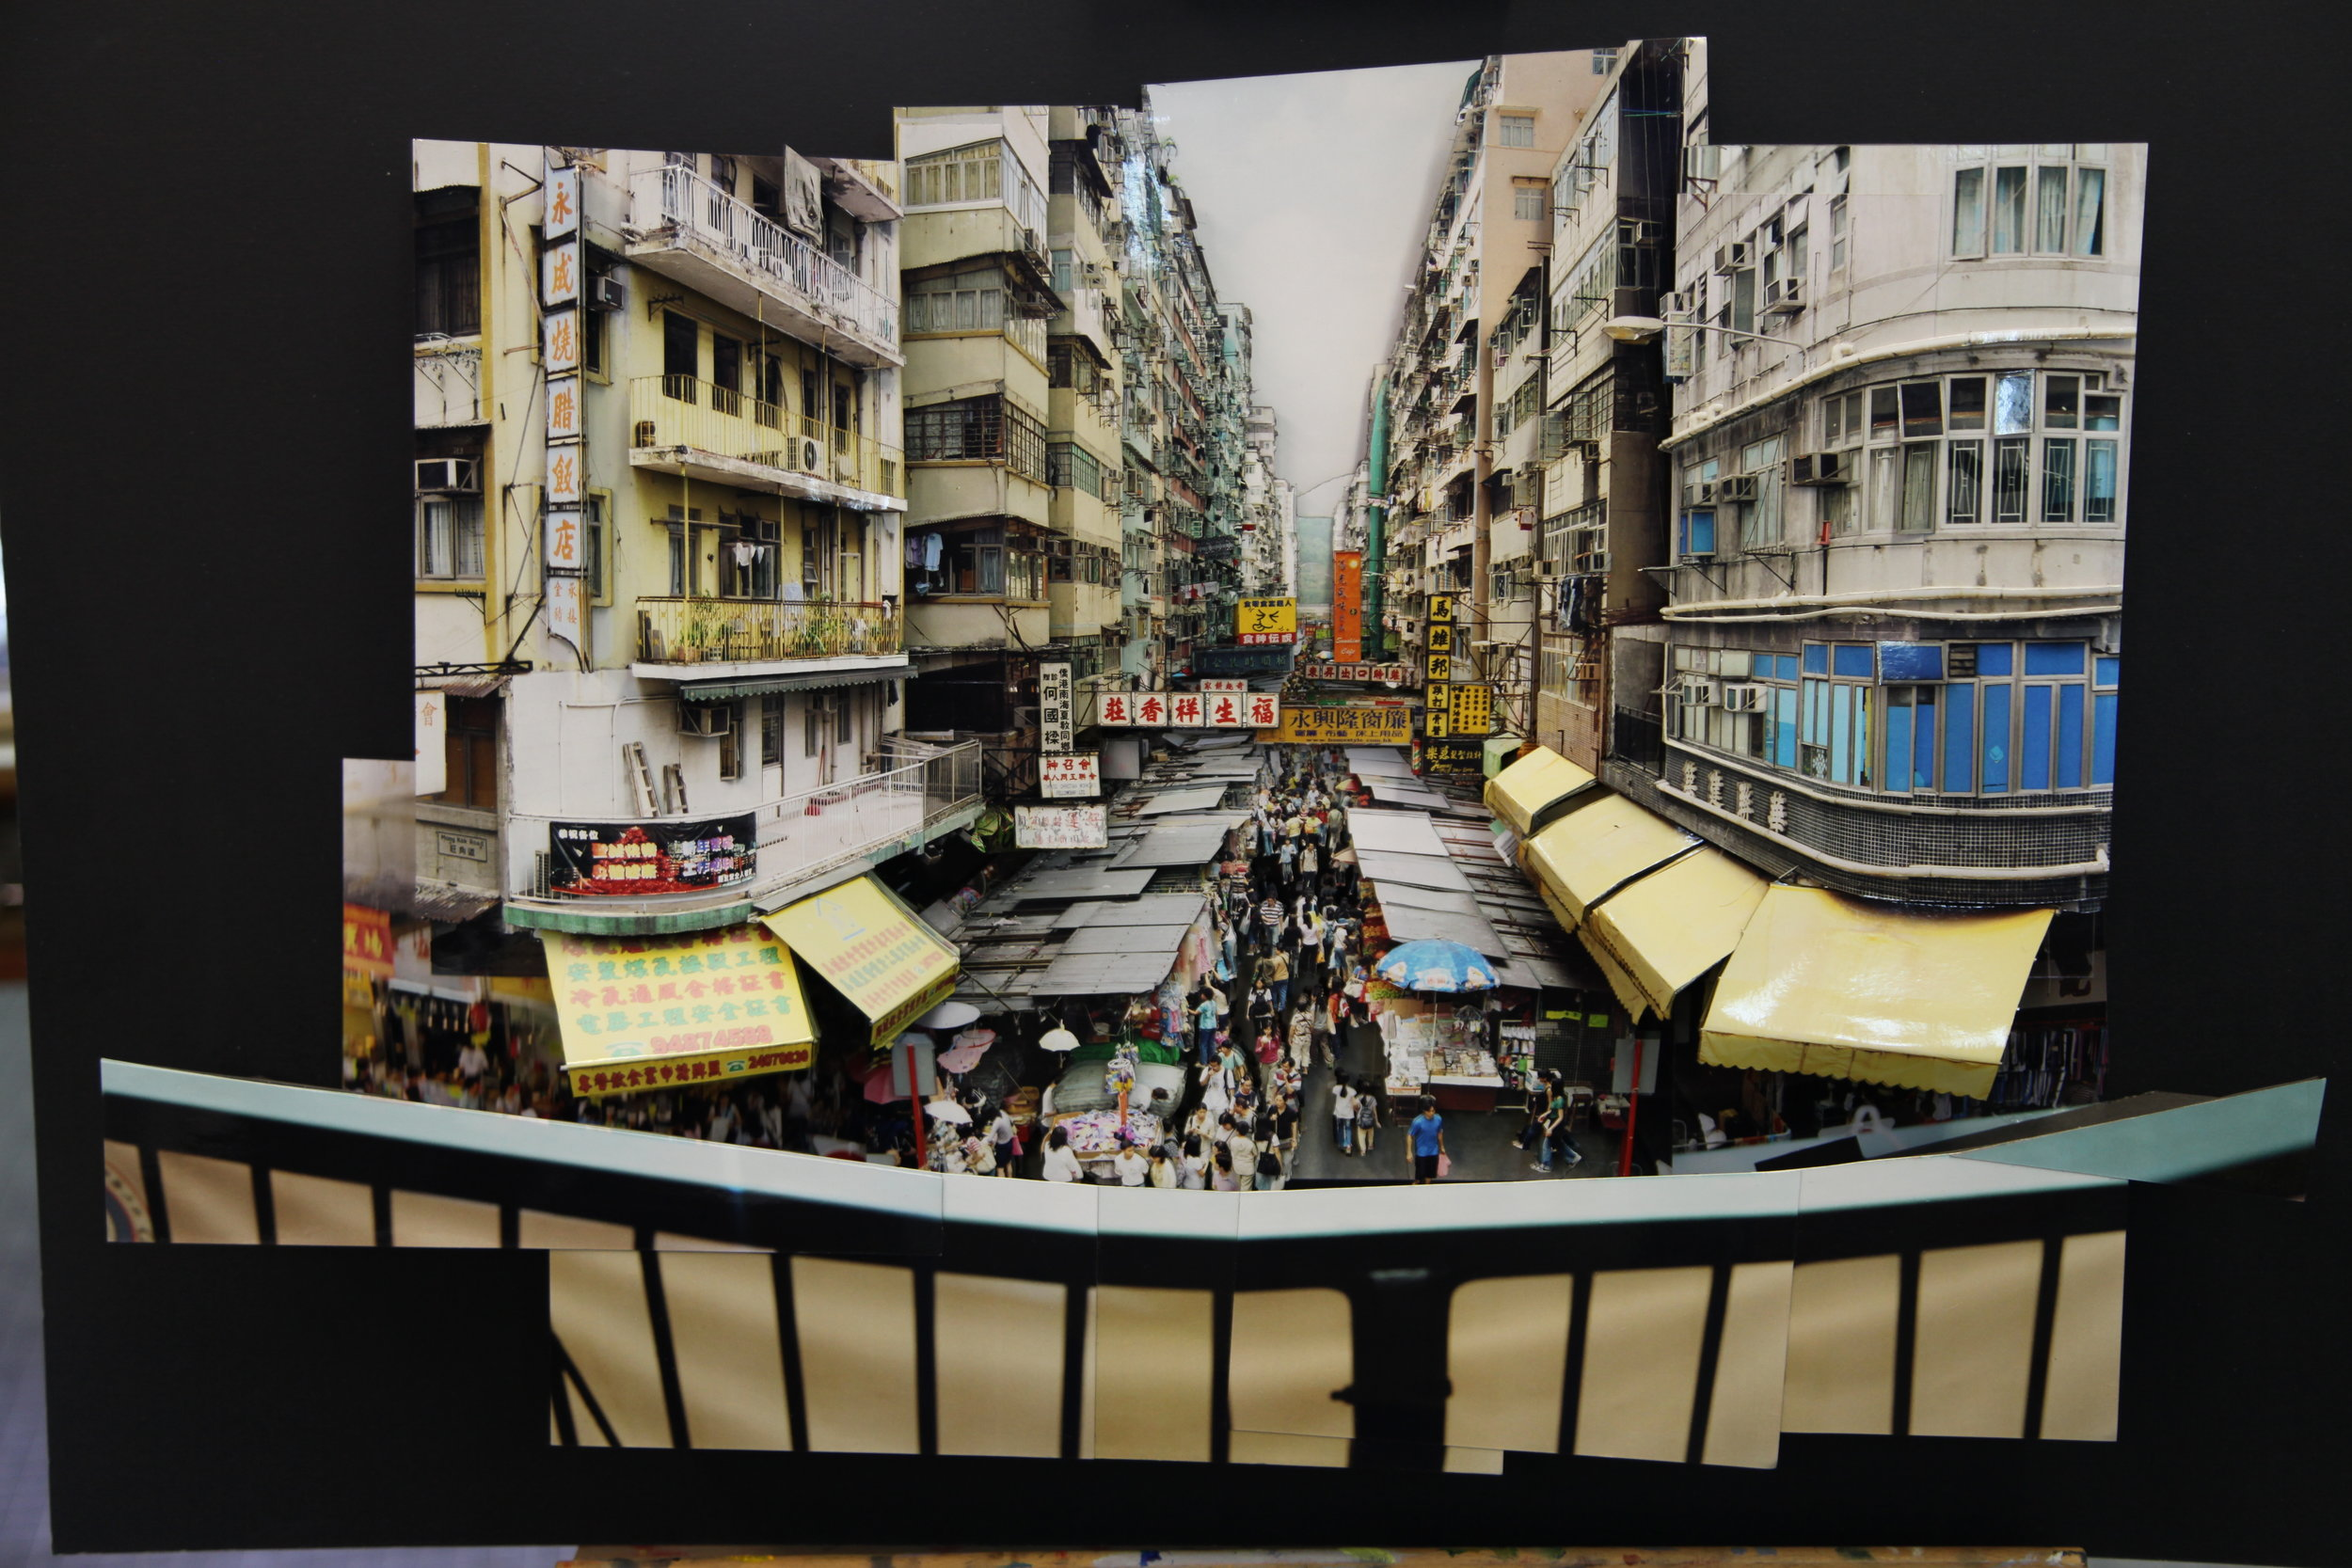 葉家偉 Alexis Ip '香港影像 花園街 Fa Yuen Street' (Hong Kong, 2019) Courtesy of Blue Lotus Gallery.JPG